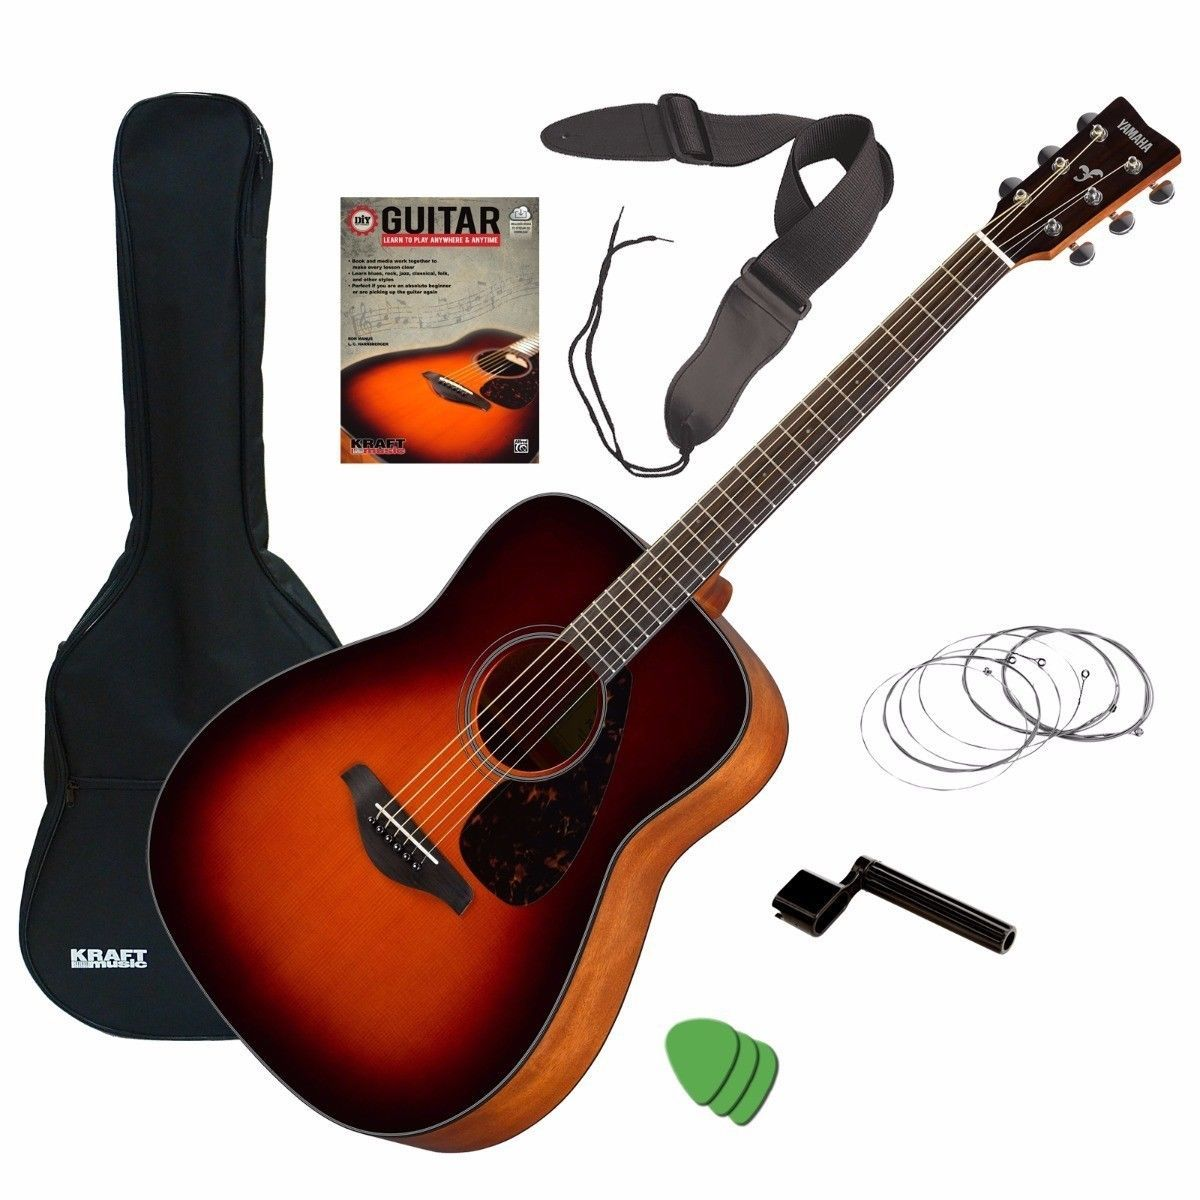 199 99 Was 523 99 61 Off Yamaha Fg800 Acoustic Guitar Brown Sunburst Guitar Essentials Bundle Dealfomo Yamaha Guitar Guitar Yamaha Fg800